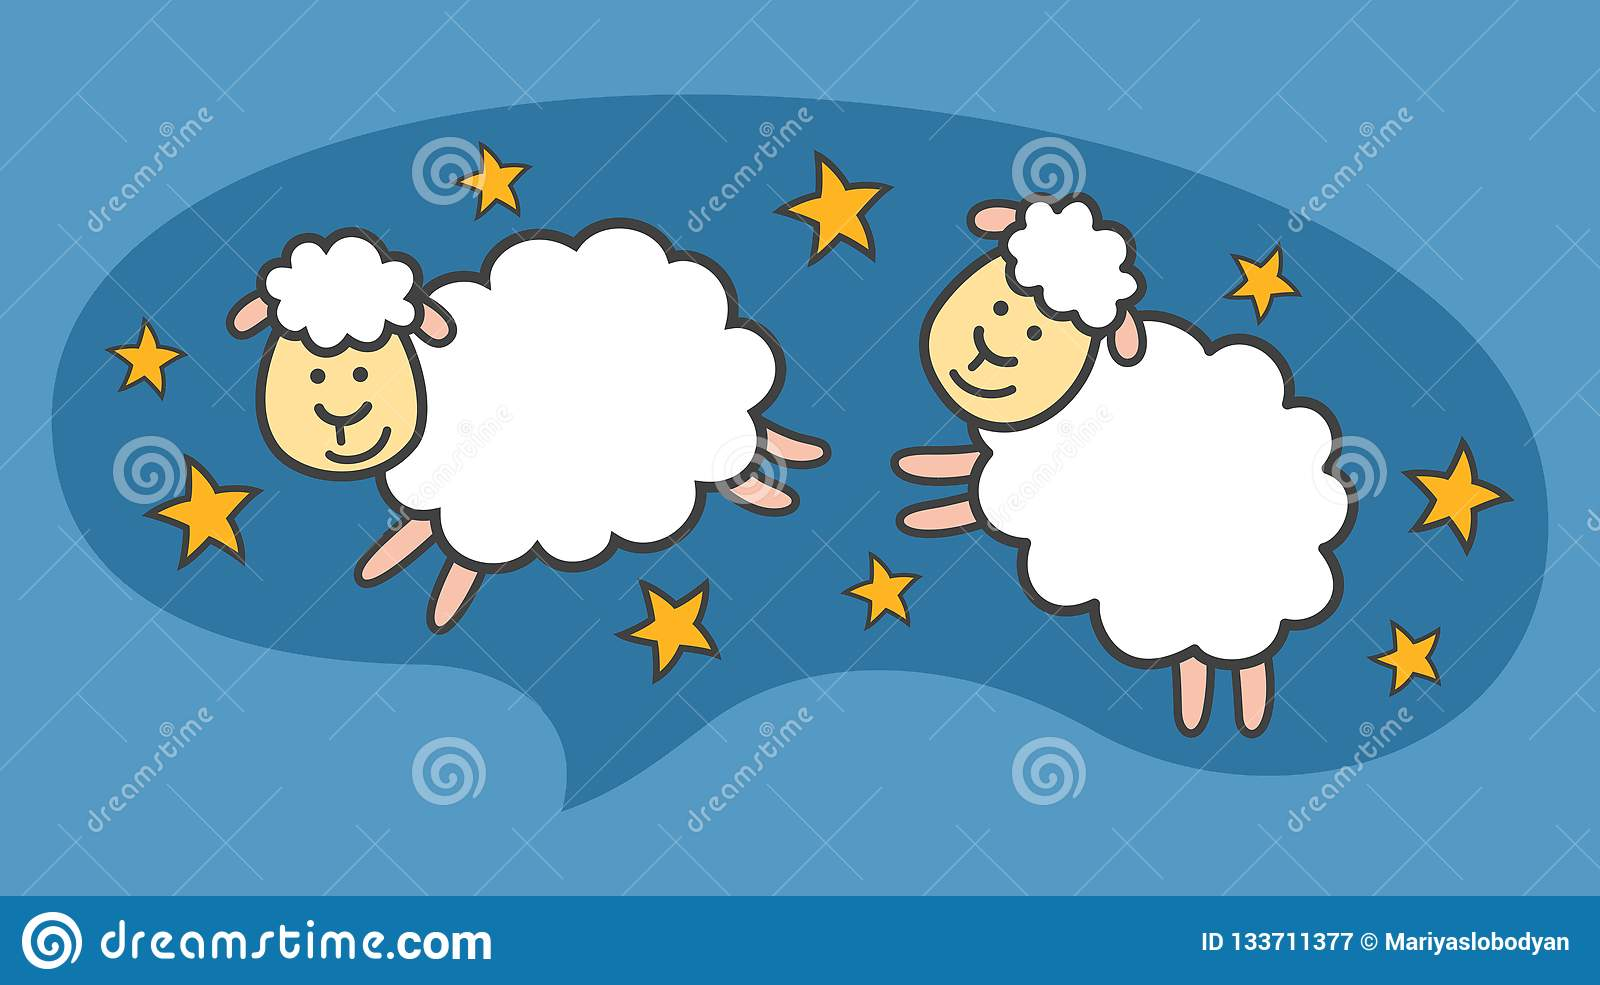 White little cartoon sheeps or lambs are flying in the blue night sky.